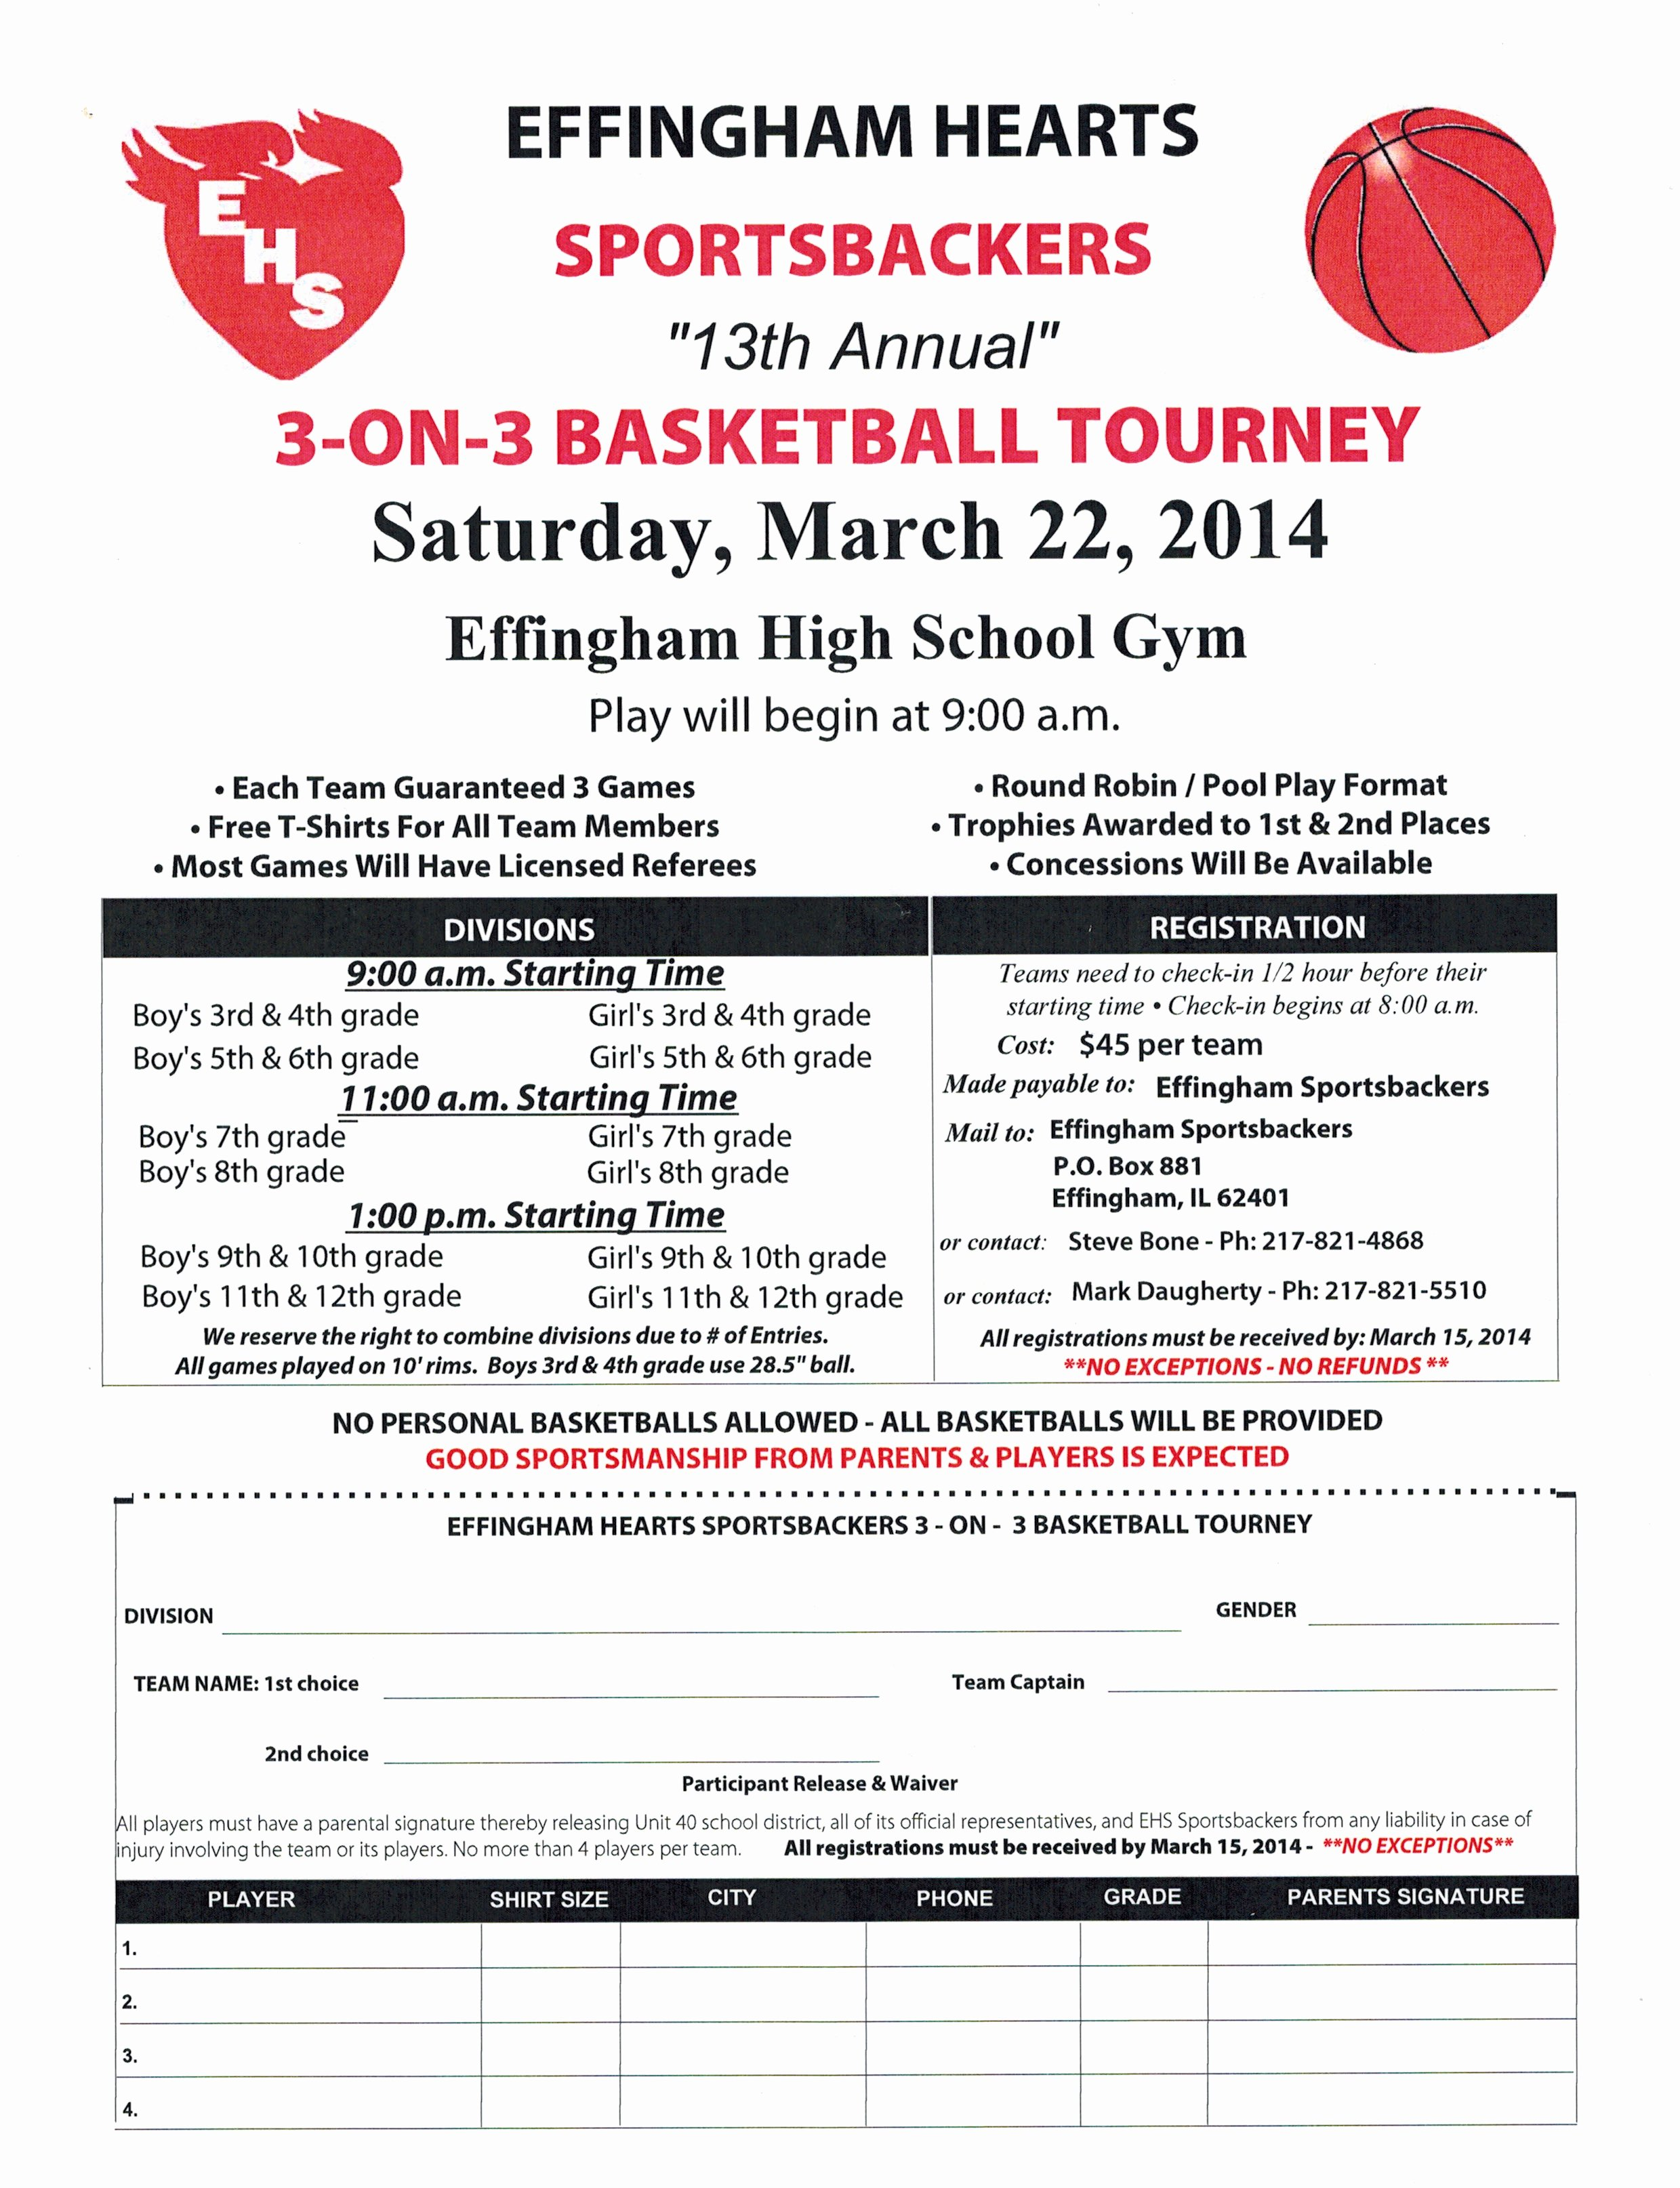 Basketball tournament Registration form Template Best Of Sportsbackers 3 On 3 Basketball tournament Scheduled